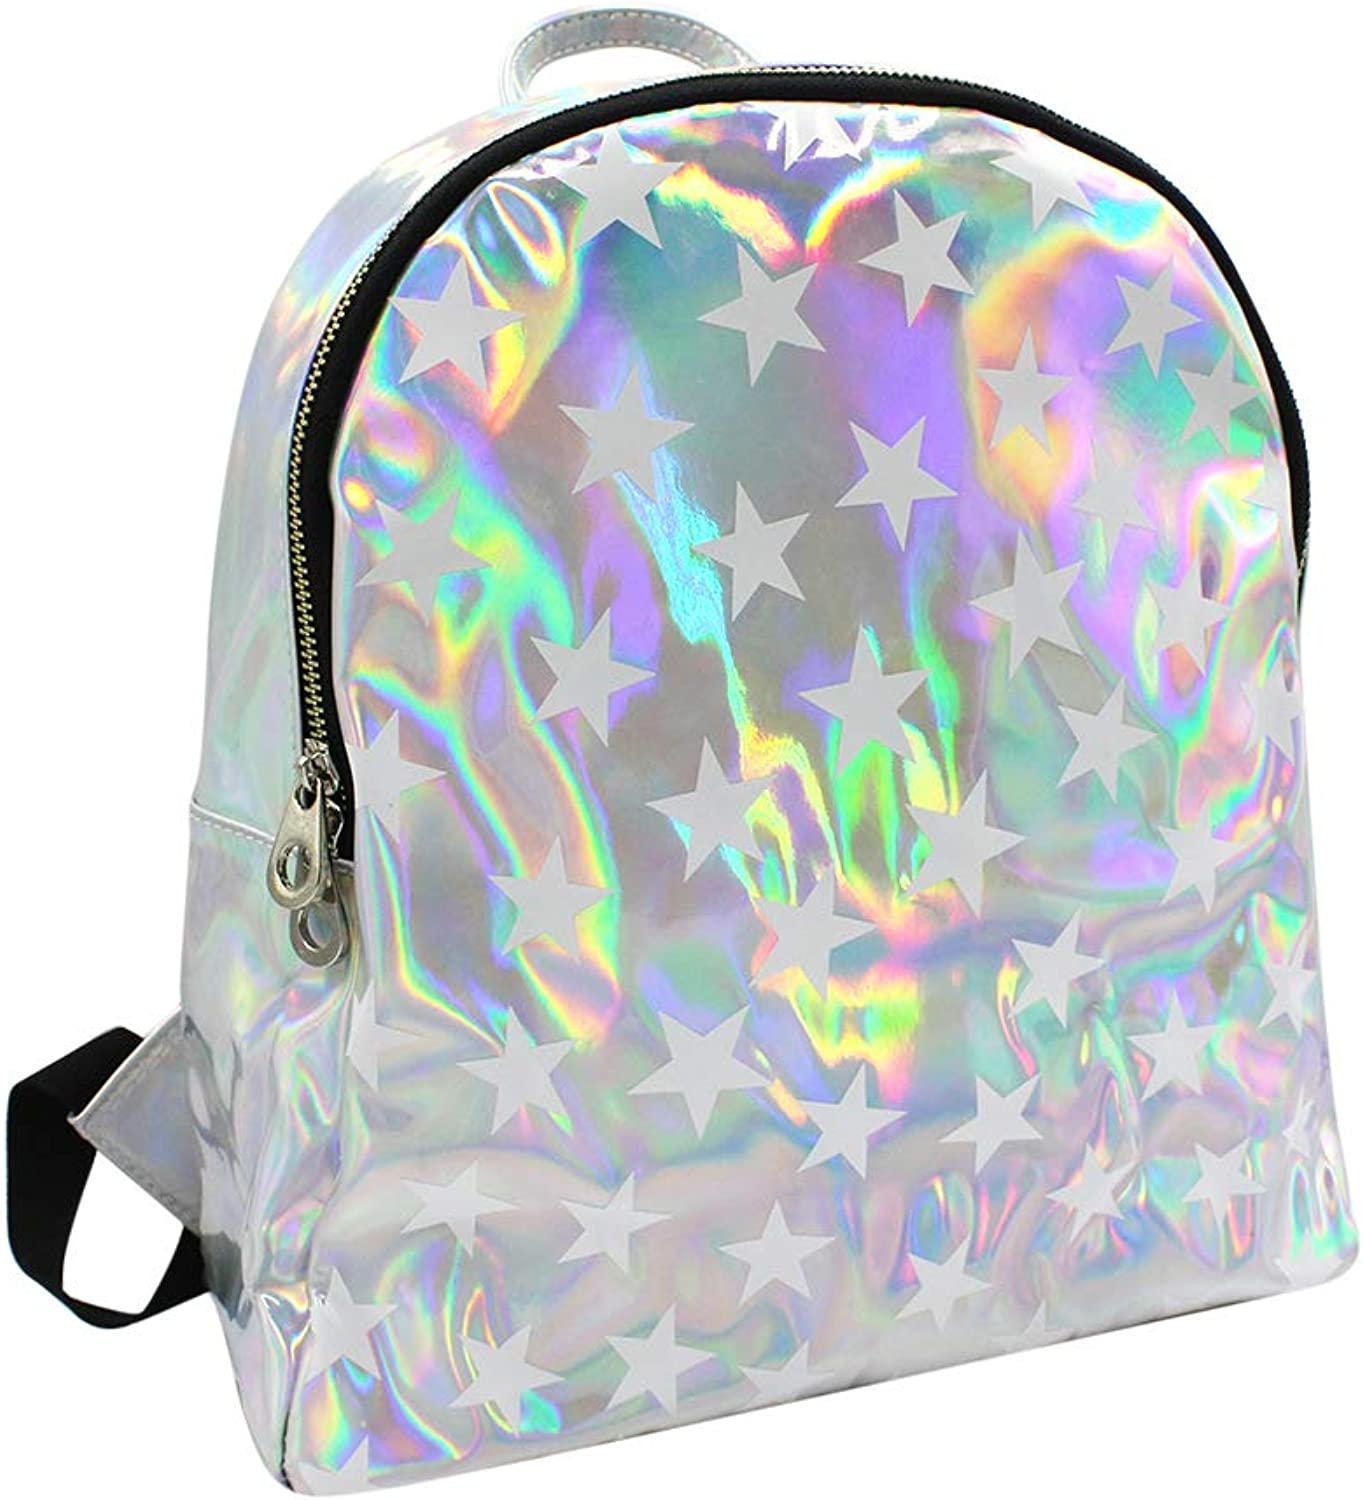 Aibearty Sliver Leather Backpack for Women Girls Travel School Casual Daypack